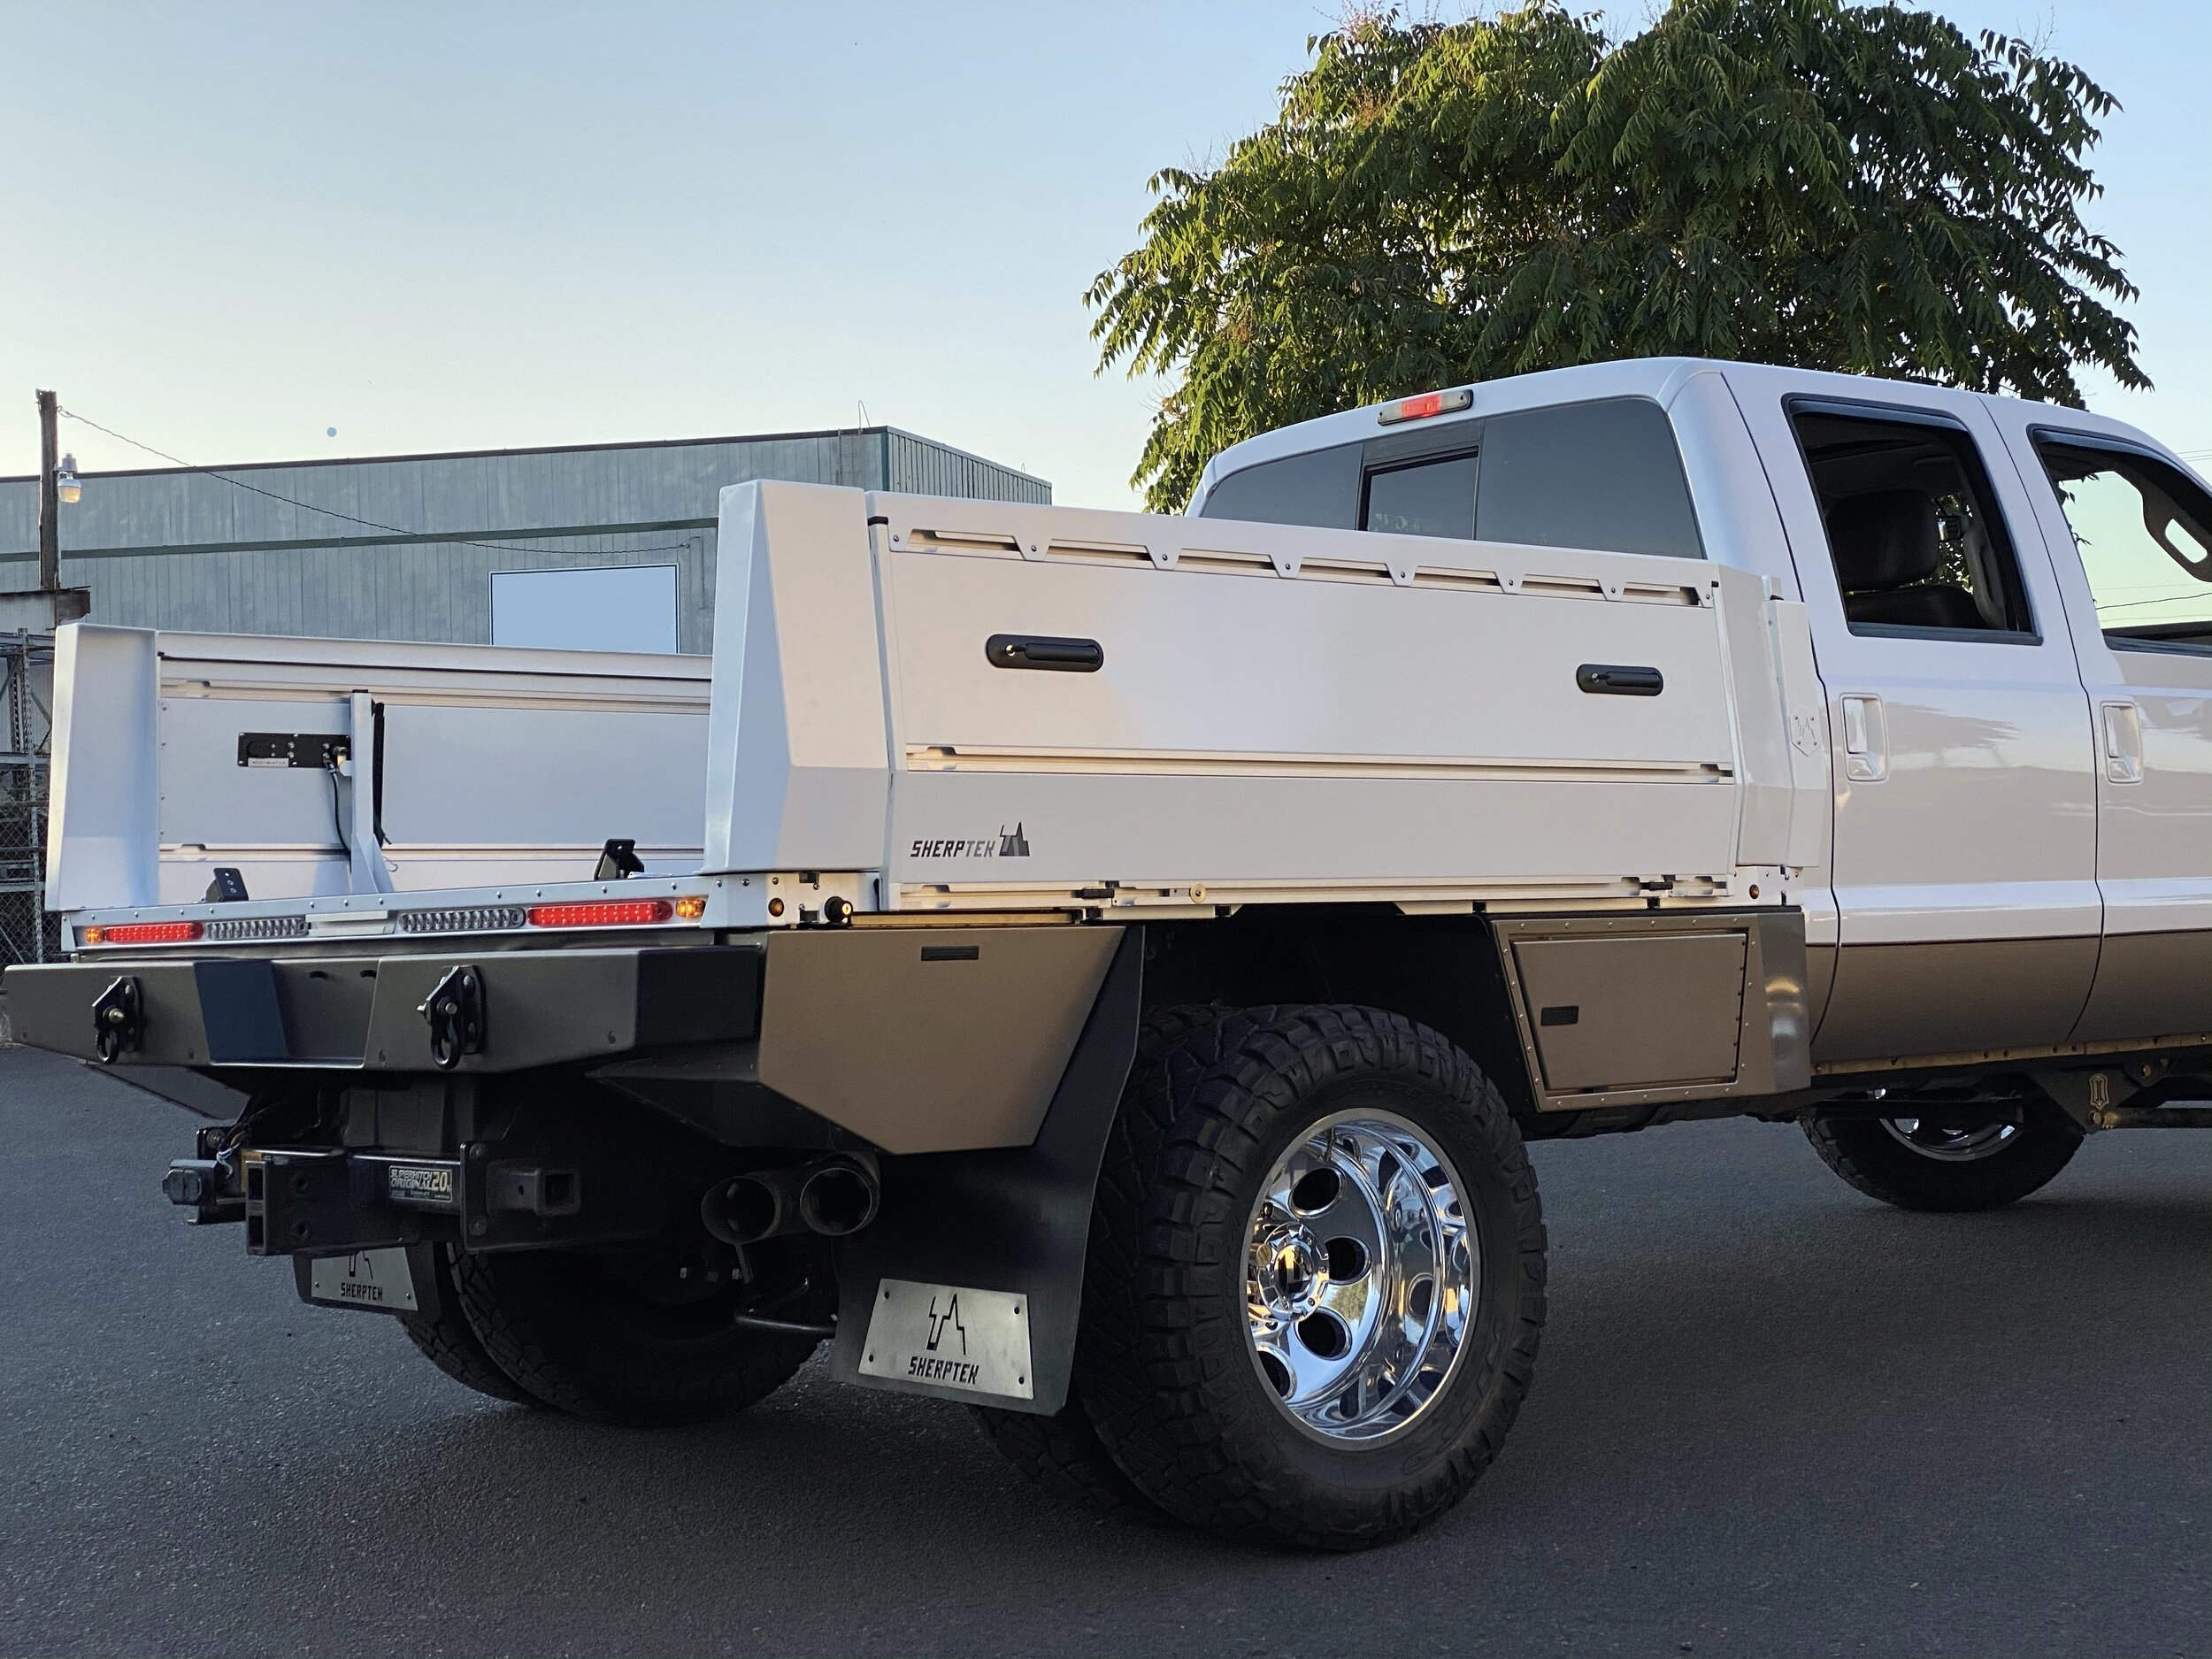 Custom Truck Beds Sherptek Sherptek Custom Gear Hauling Solutions Flatbeds Truck Decks And Truck Trays